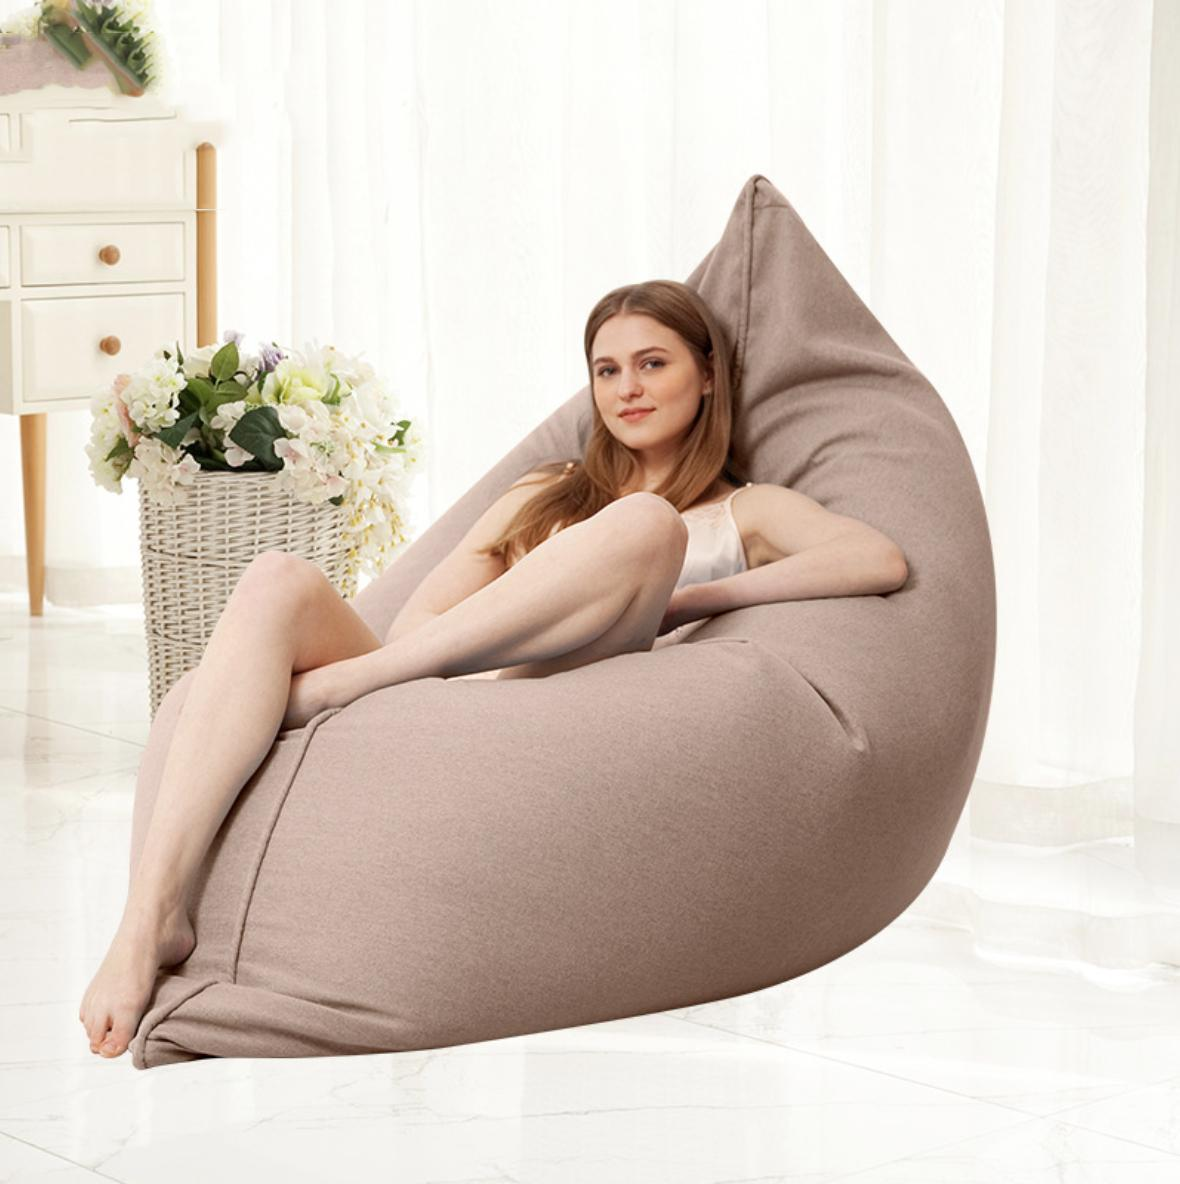 JIJI Tami Multi Purpose Bean Bag ( 130 x 160 Cm ) (Bean Bag) - Beanbag/ Bean bag Chair /Styrofoam particles filled/ Fabric outer layer/ Washable / small sofa (SG)